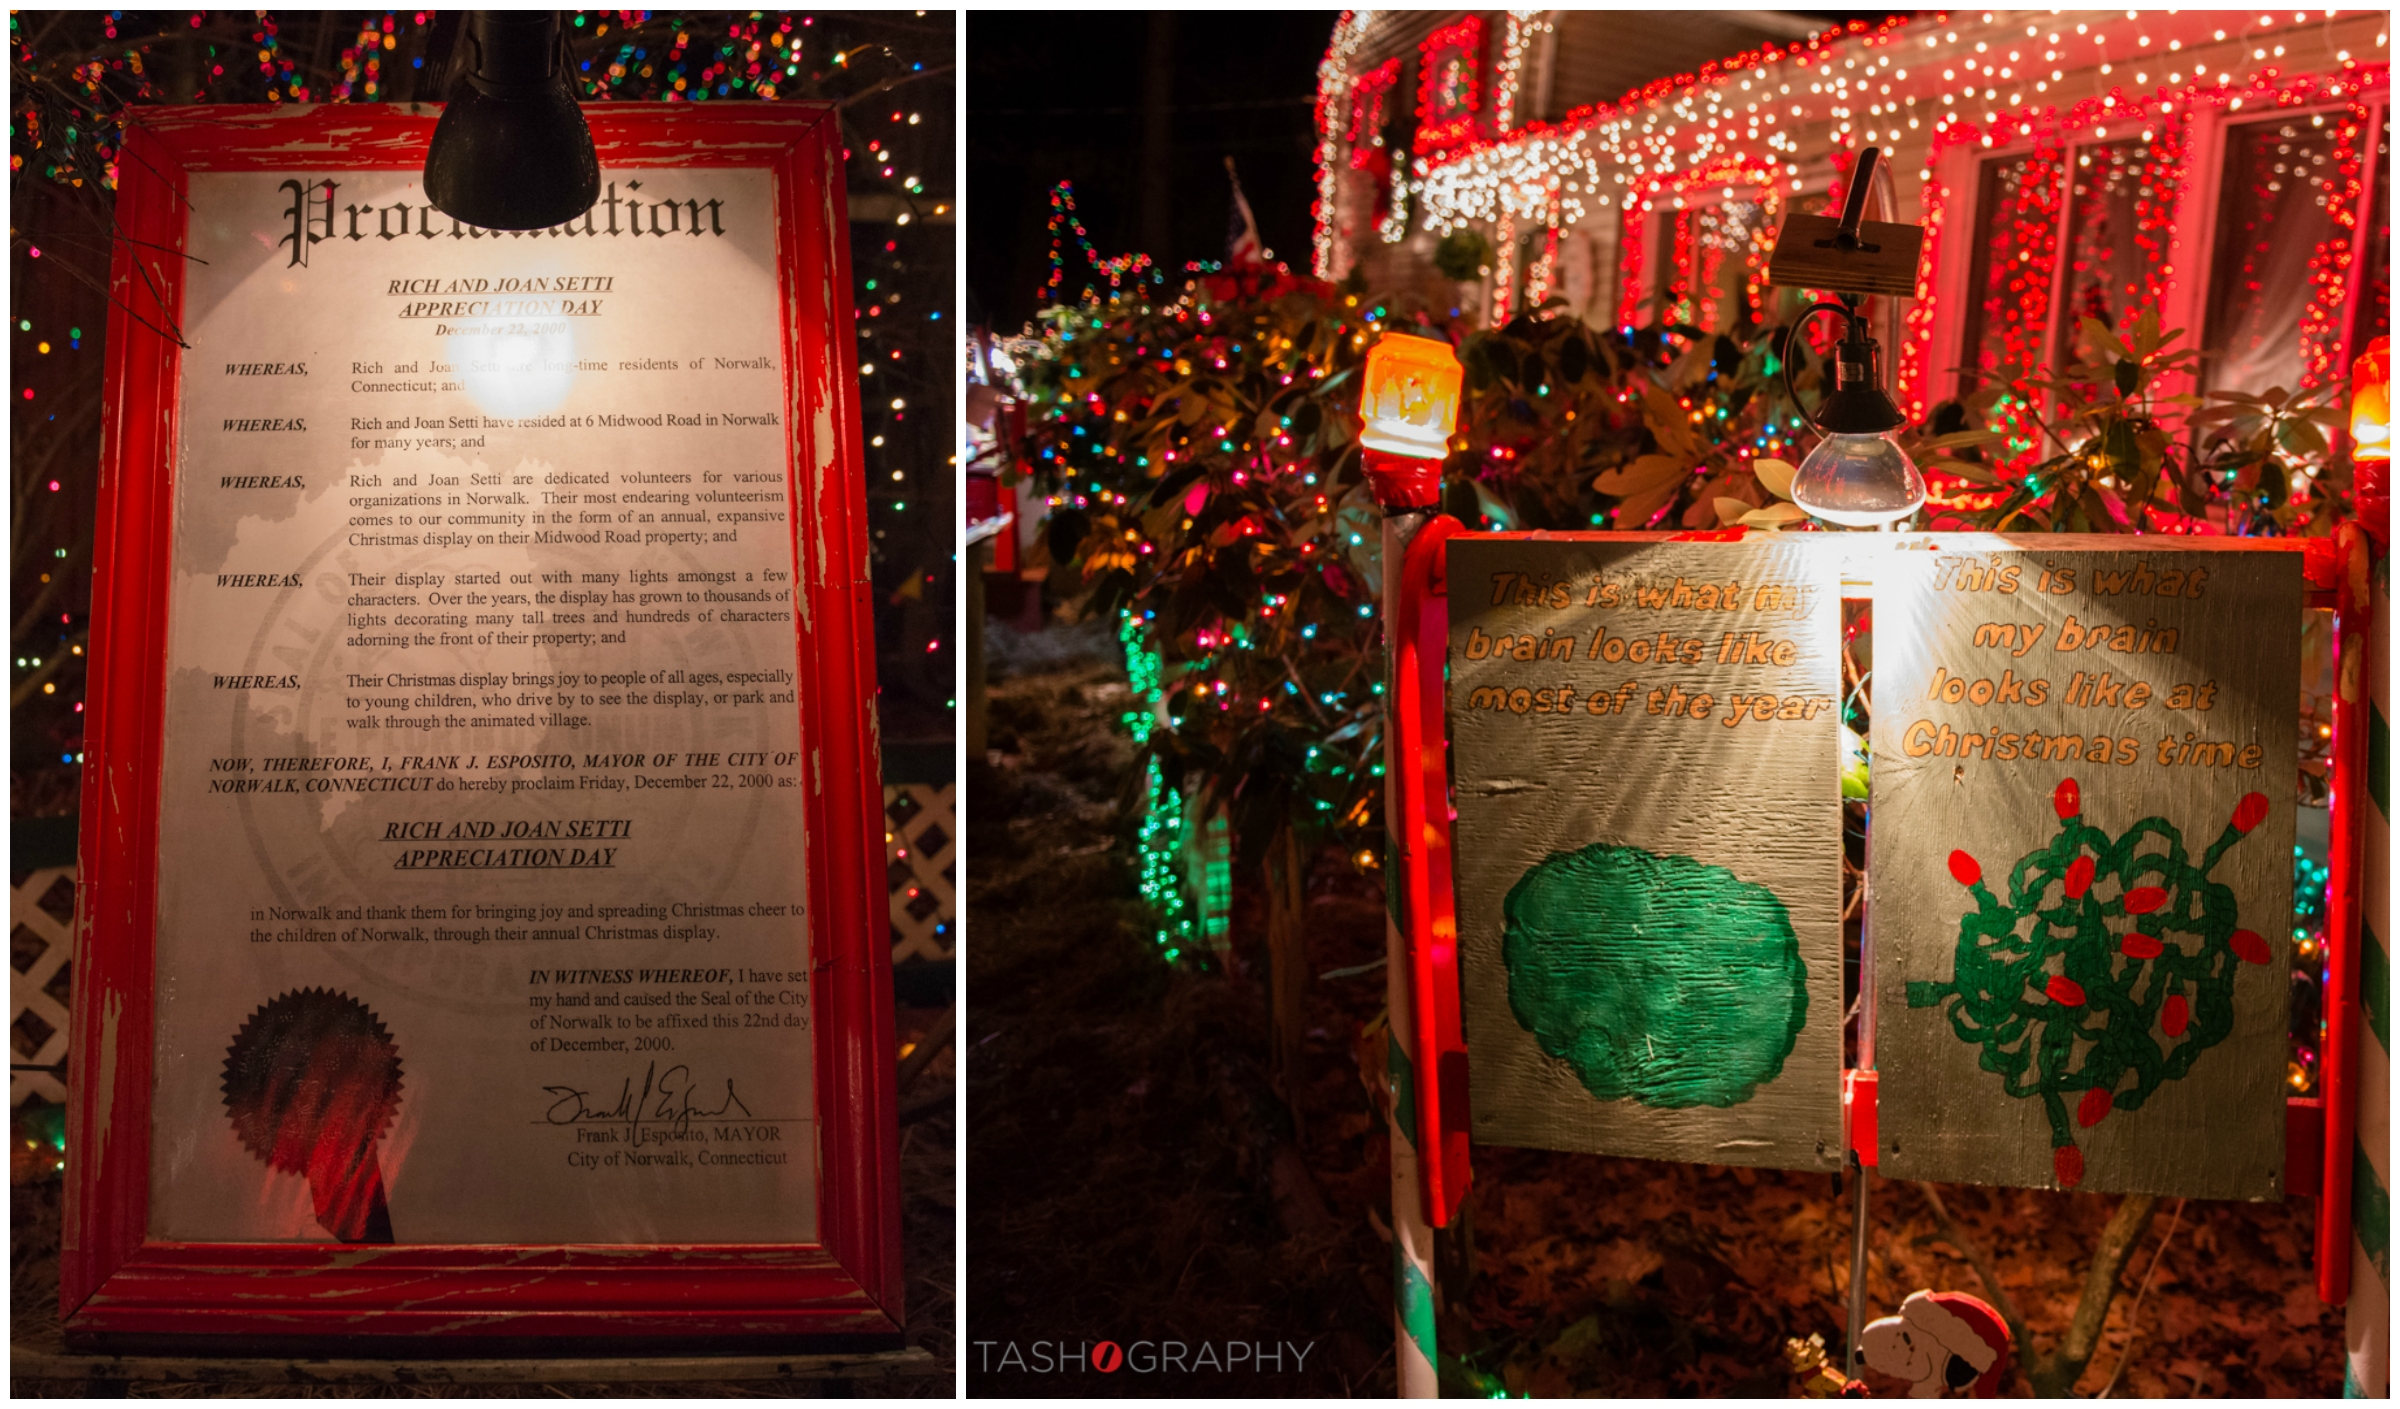 On December 22, 2000,Mayor Esposito of Norwalk, CT declared it Rick and Joan Setti Appreciation Day to thank them for bringing joy and Christmas cheer to the children of Norwalk.